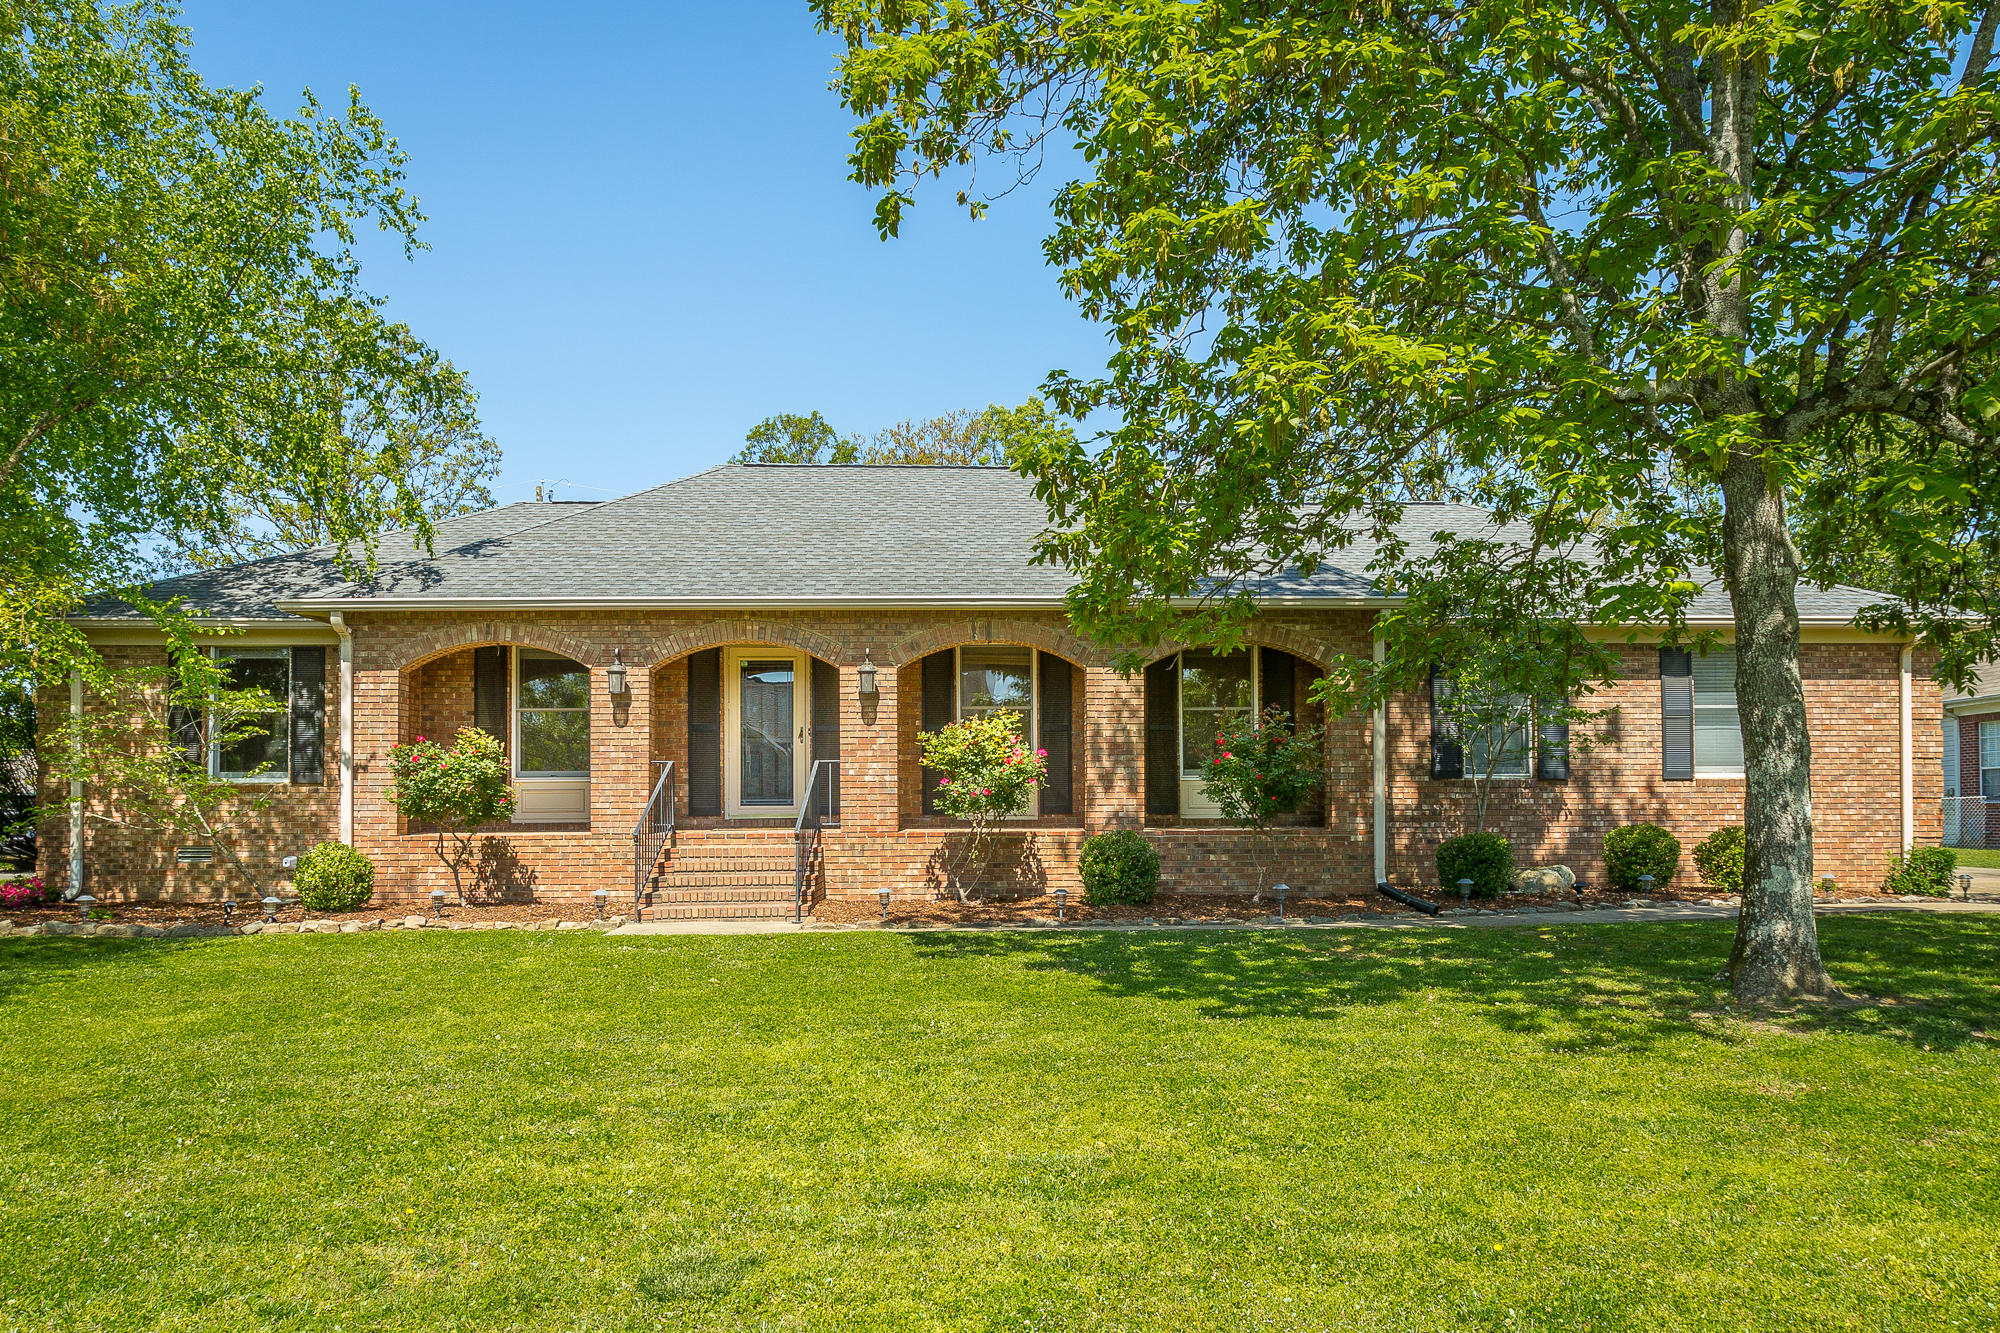 2023  Merlin  Dr, Chattanooga, Tennessee